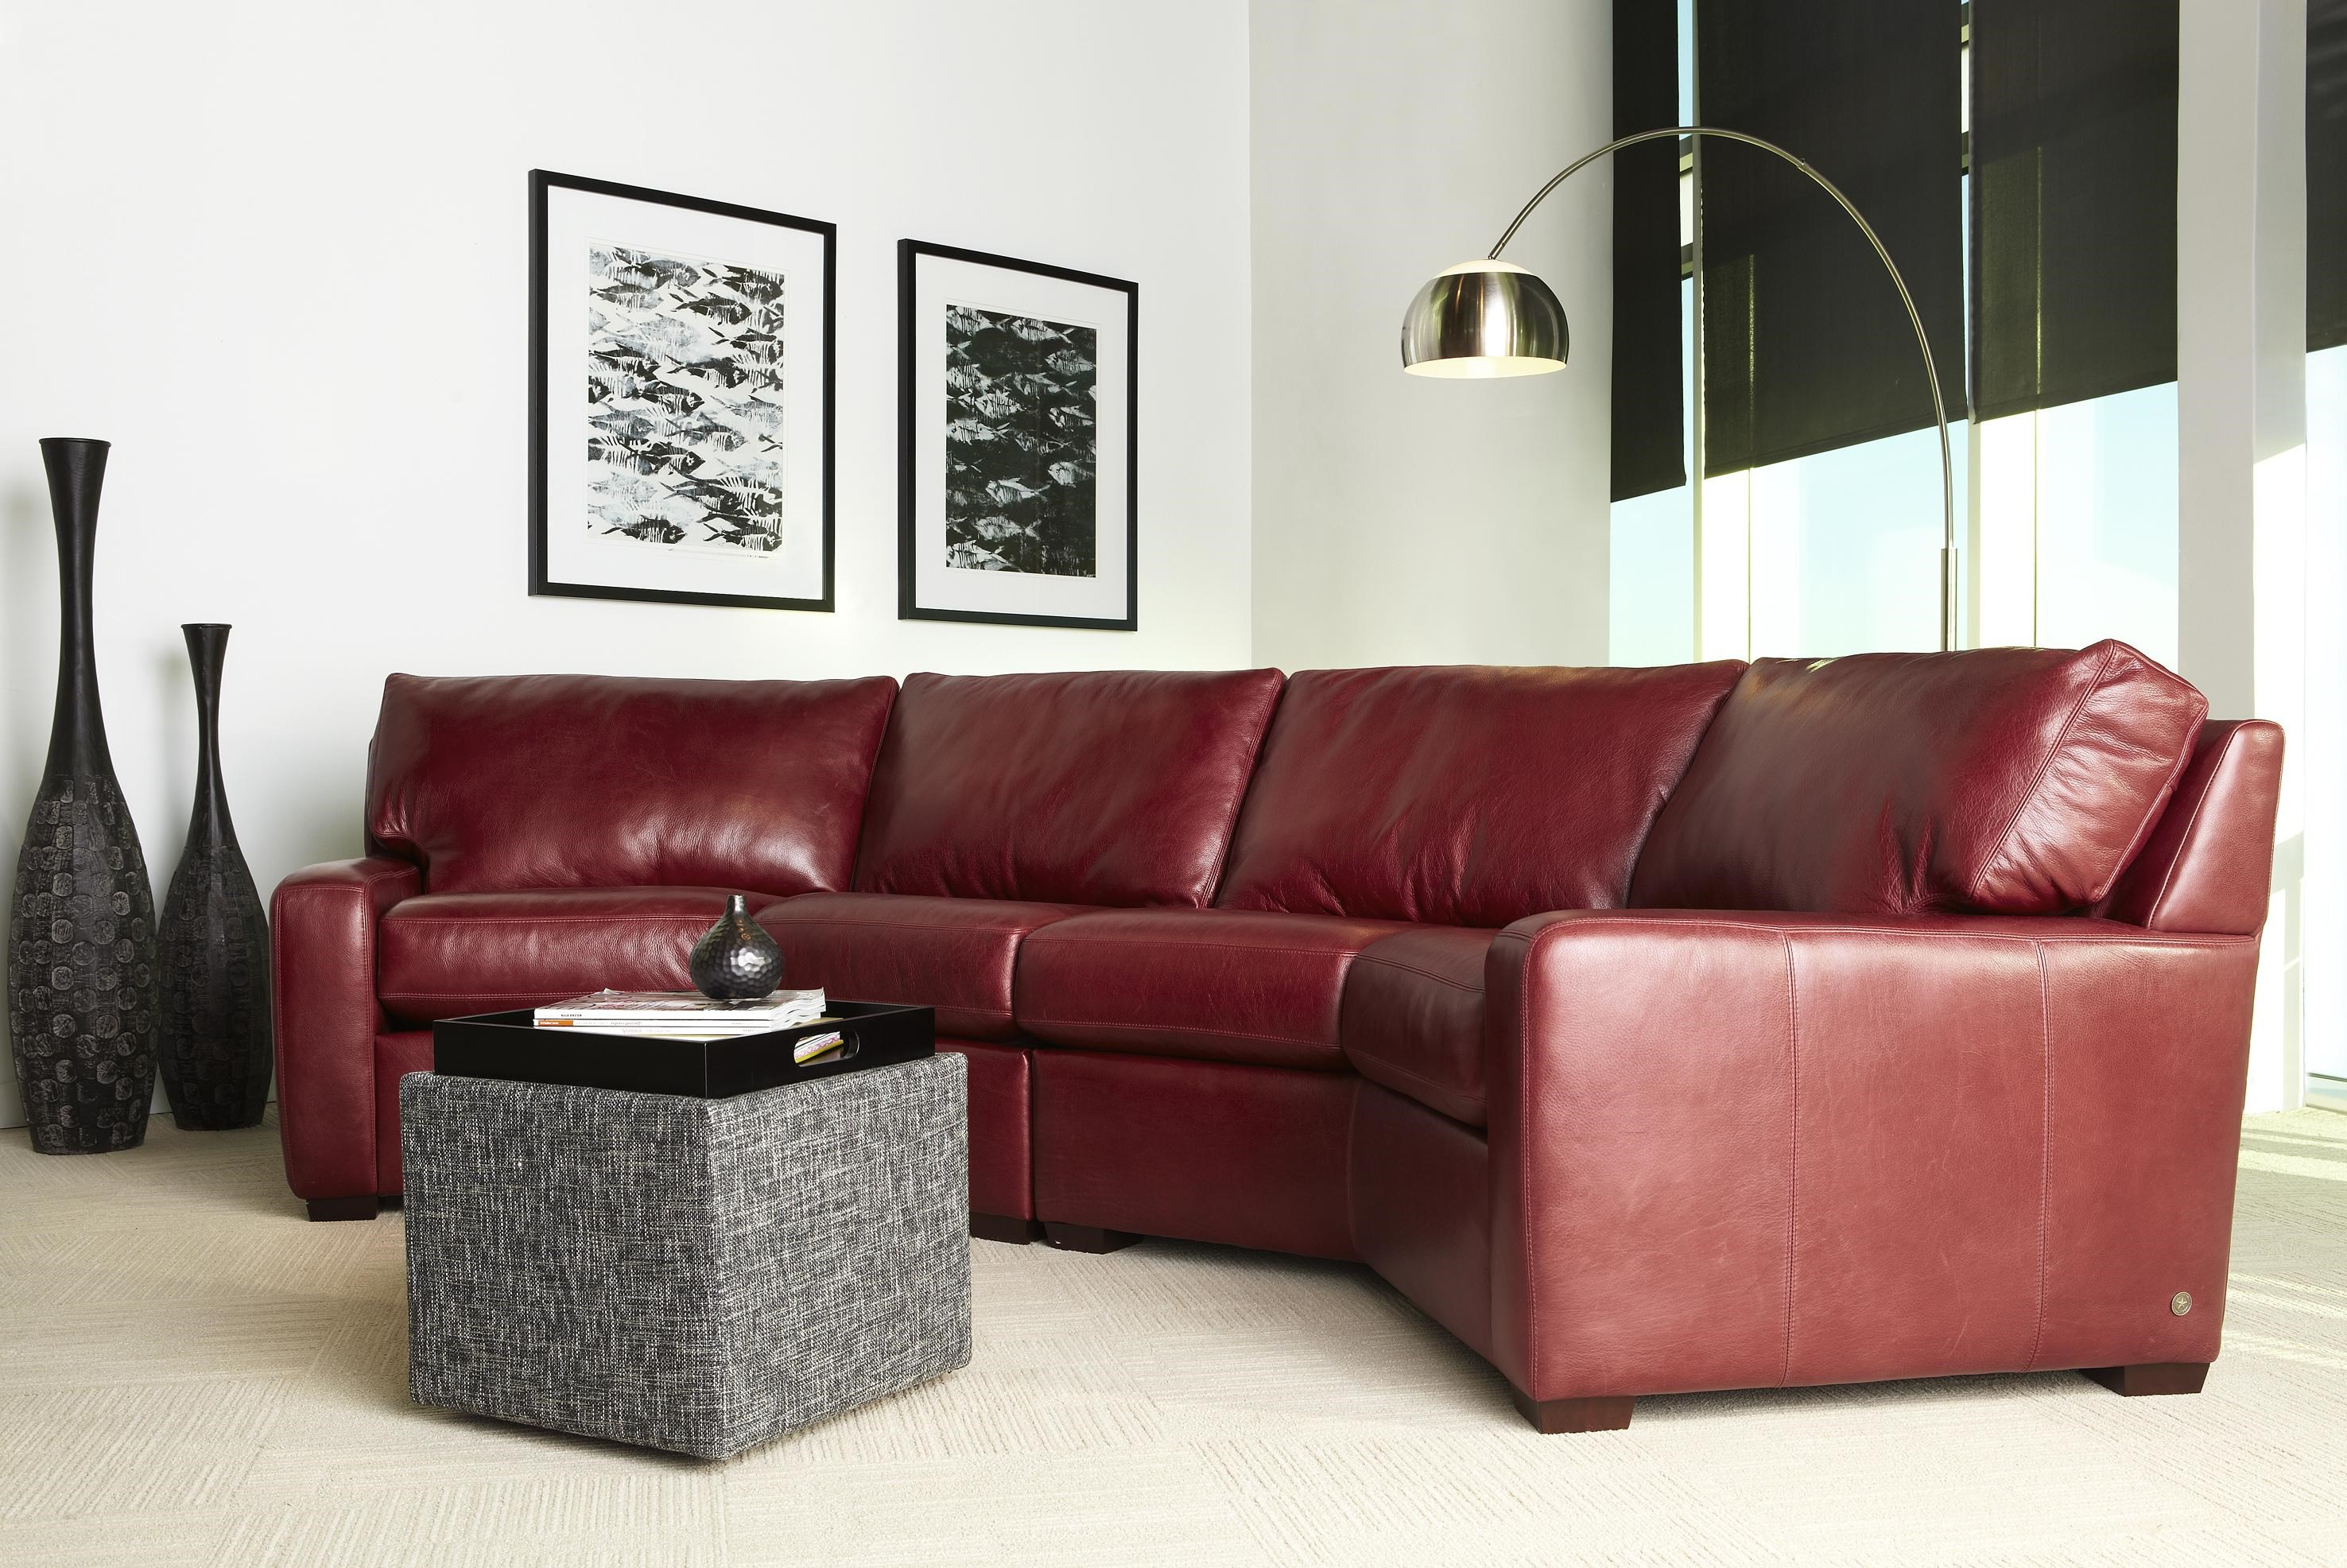 American Leather Carson Leather Sectional Becker Furniture World Sectional  Sofas